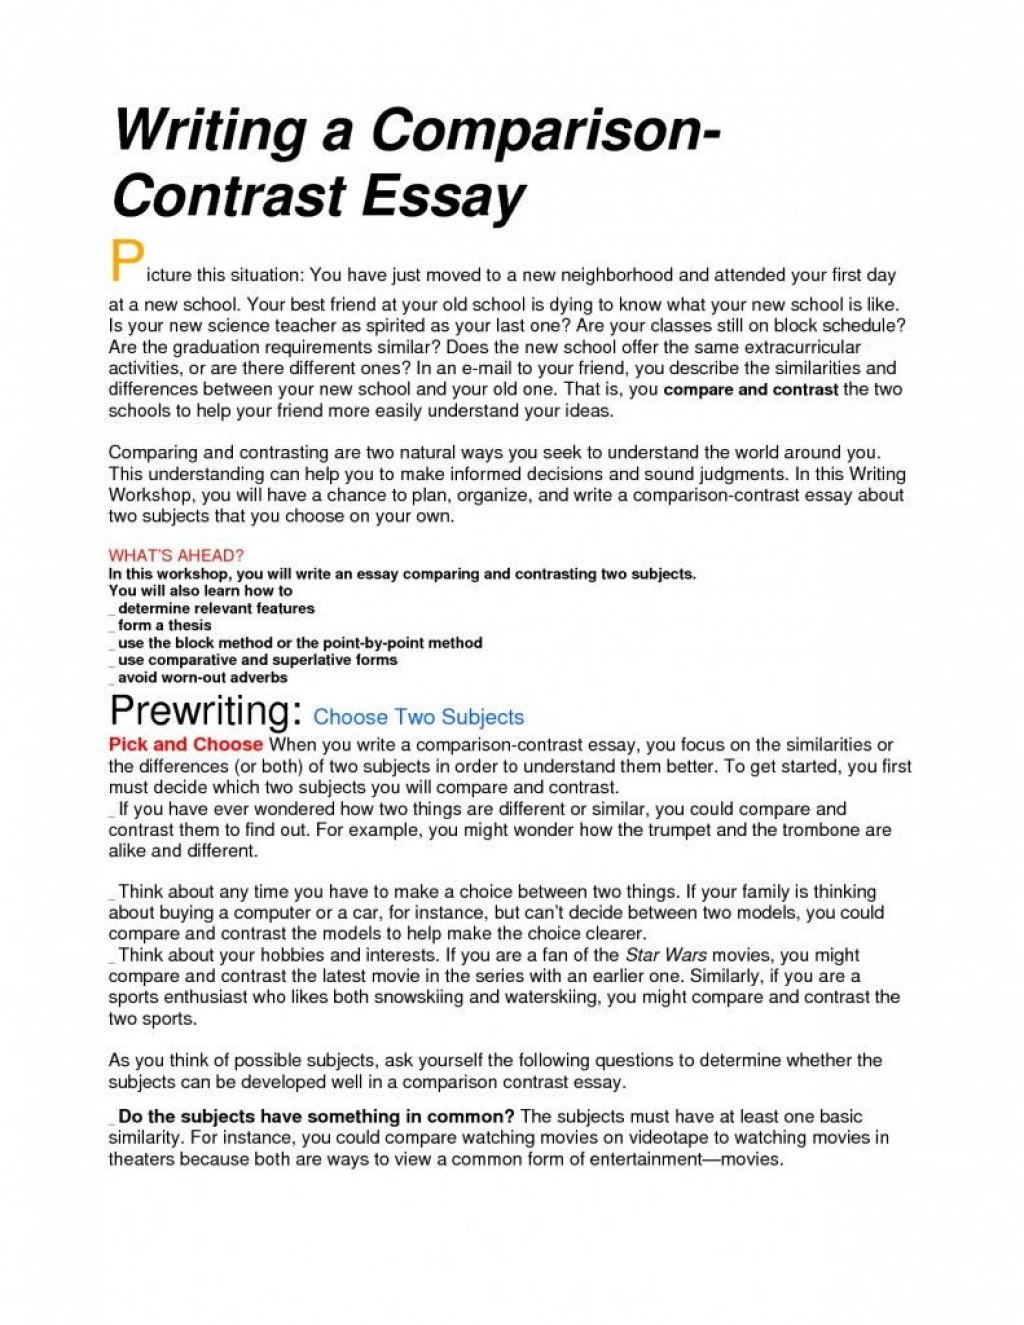 020 Literary Review Is Summary About Specific Topic In Essay Formare Contrast Examples College And High School For Students Outline Vs Pdf Free Level Example Striking Compare Comparison 4th Grade 5th Large